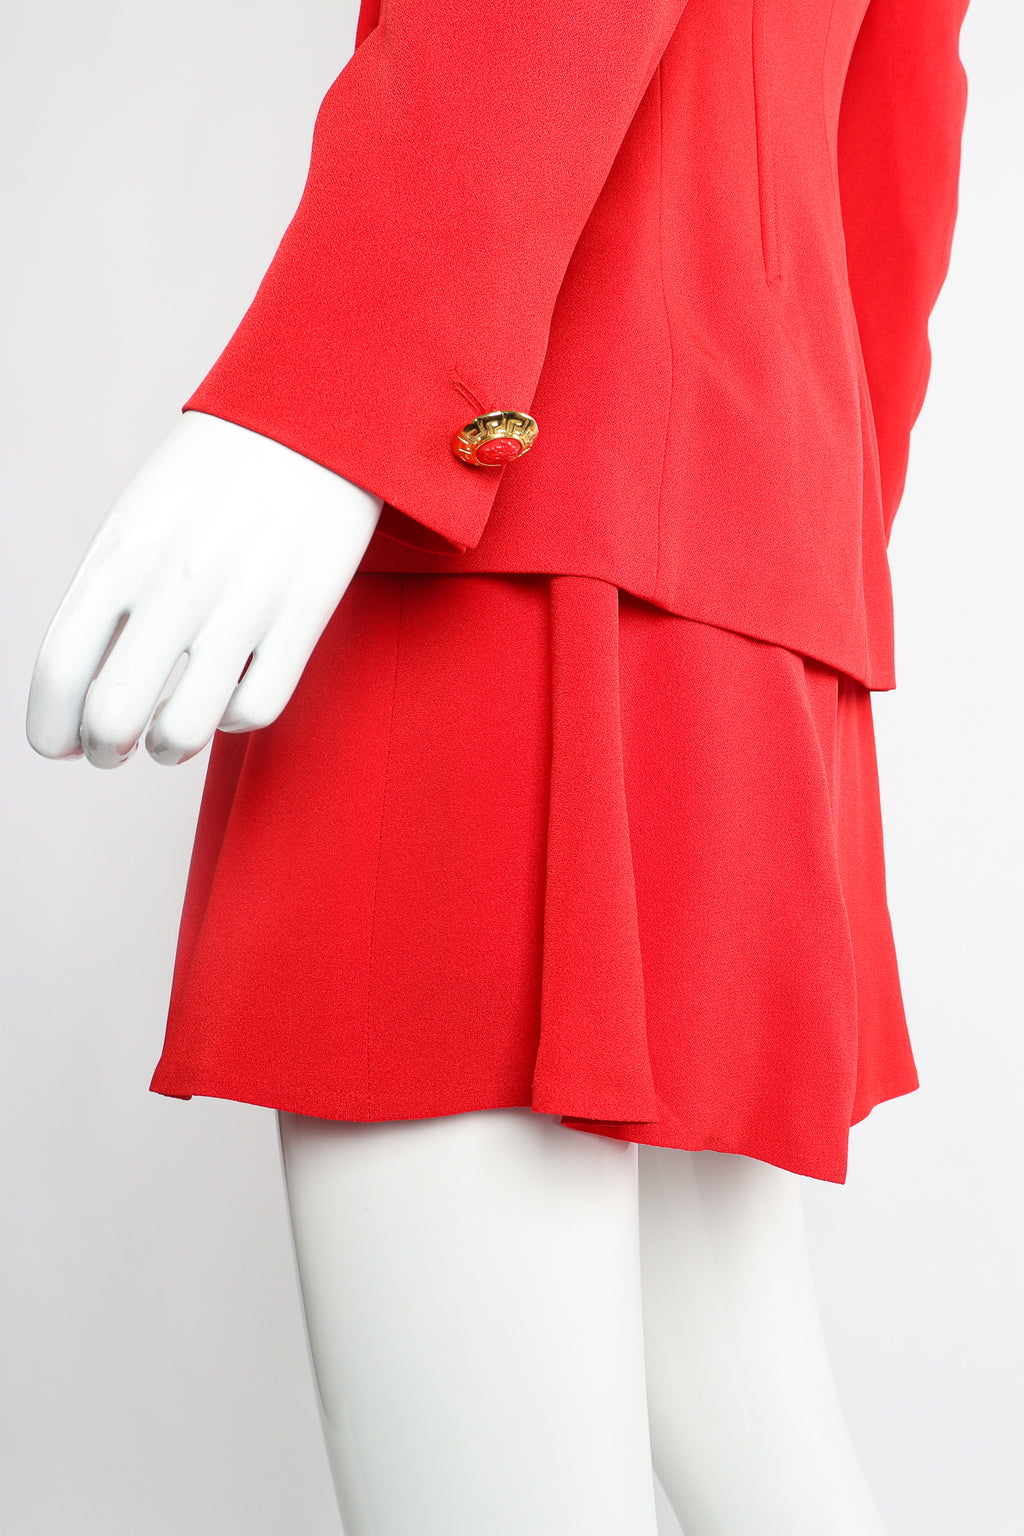 Vintage Versace 3-piece Vested Skirt Suit on Mannequin hemline at Recess Los Angeles